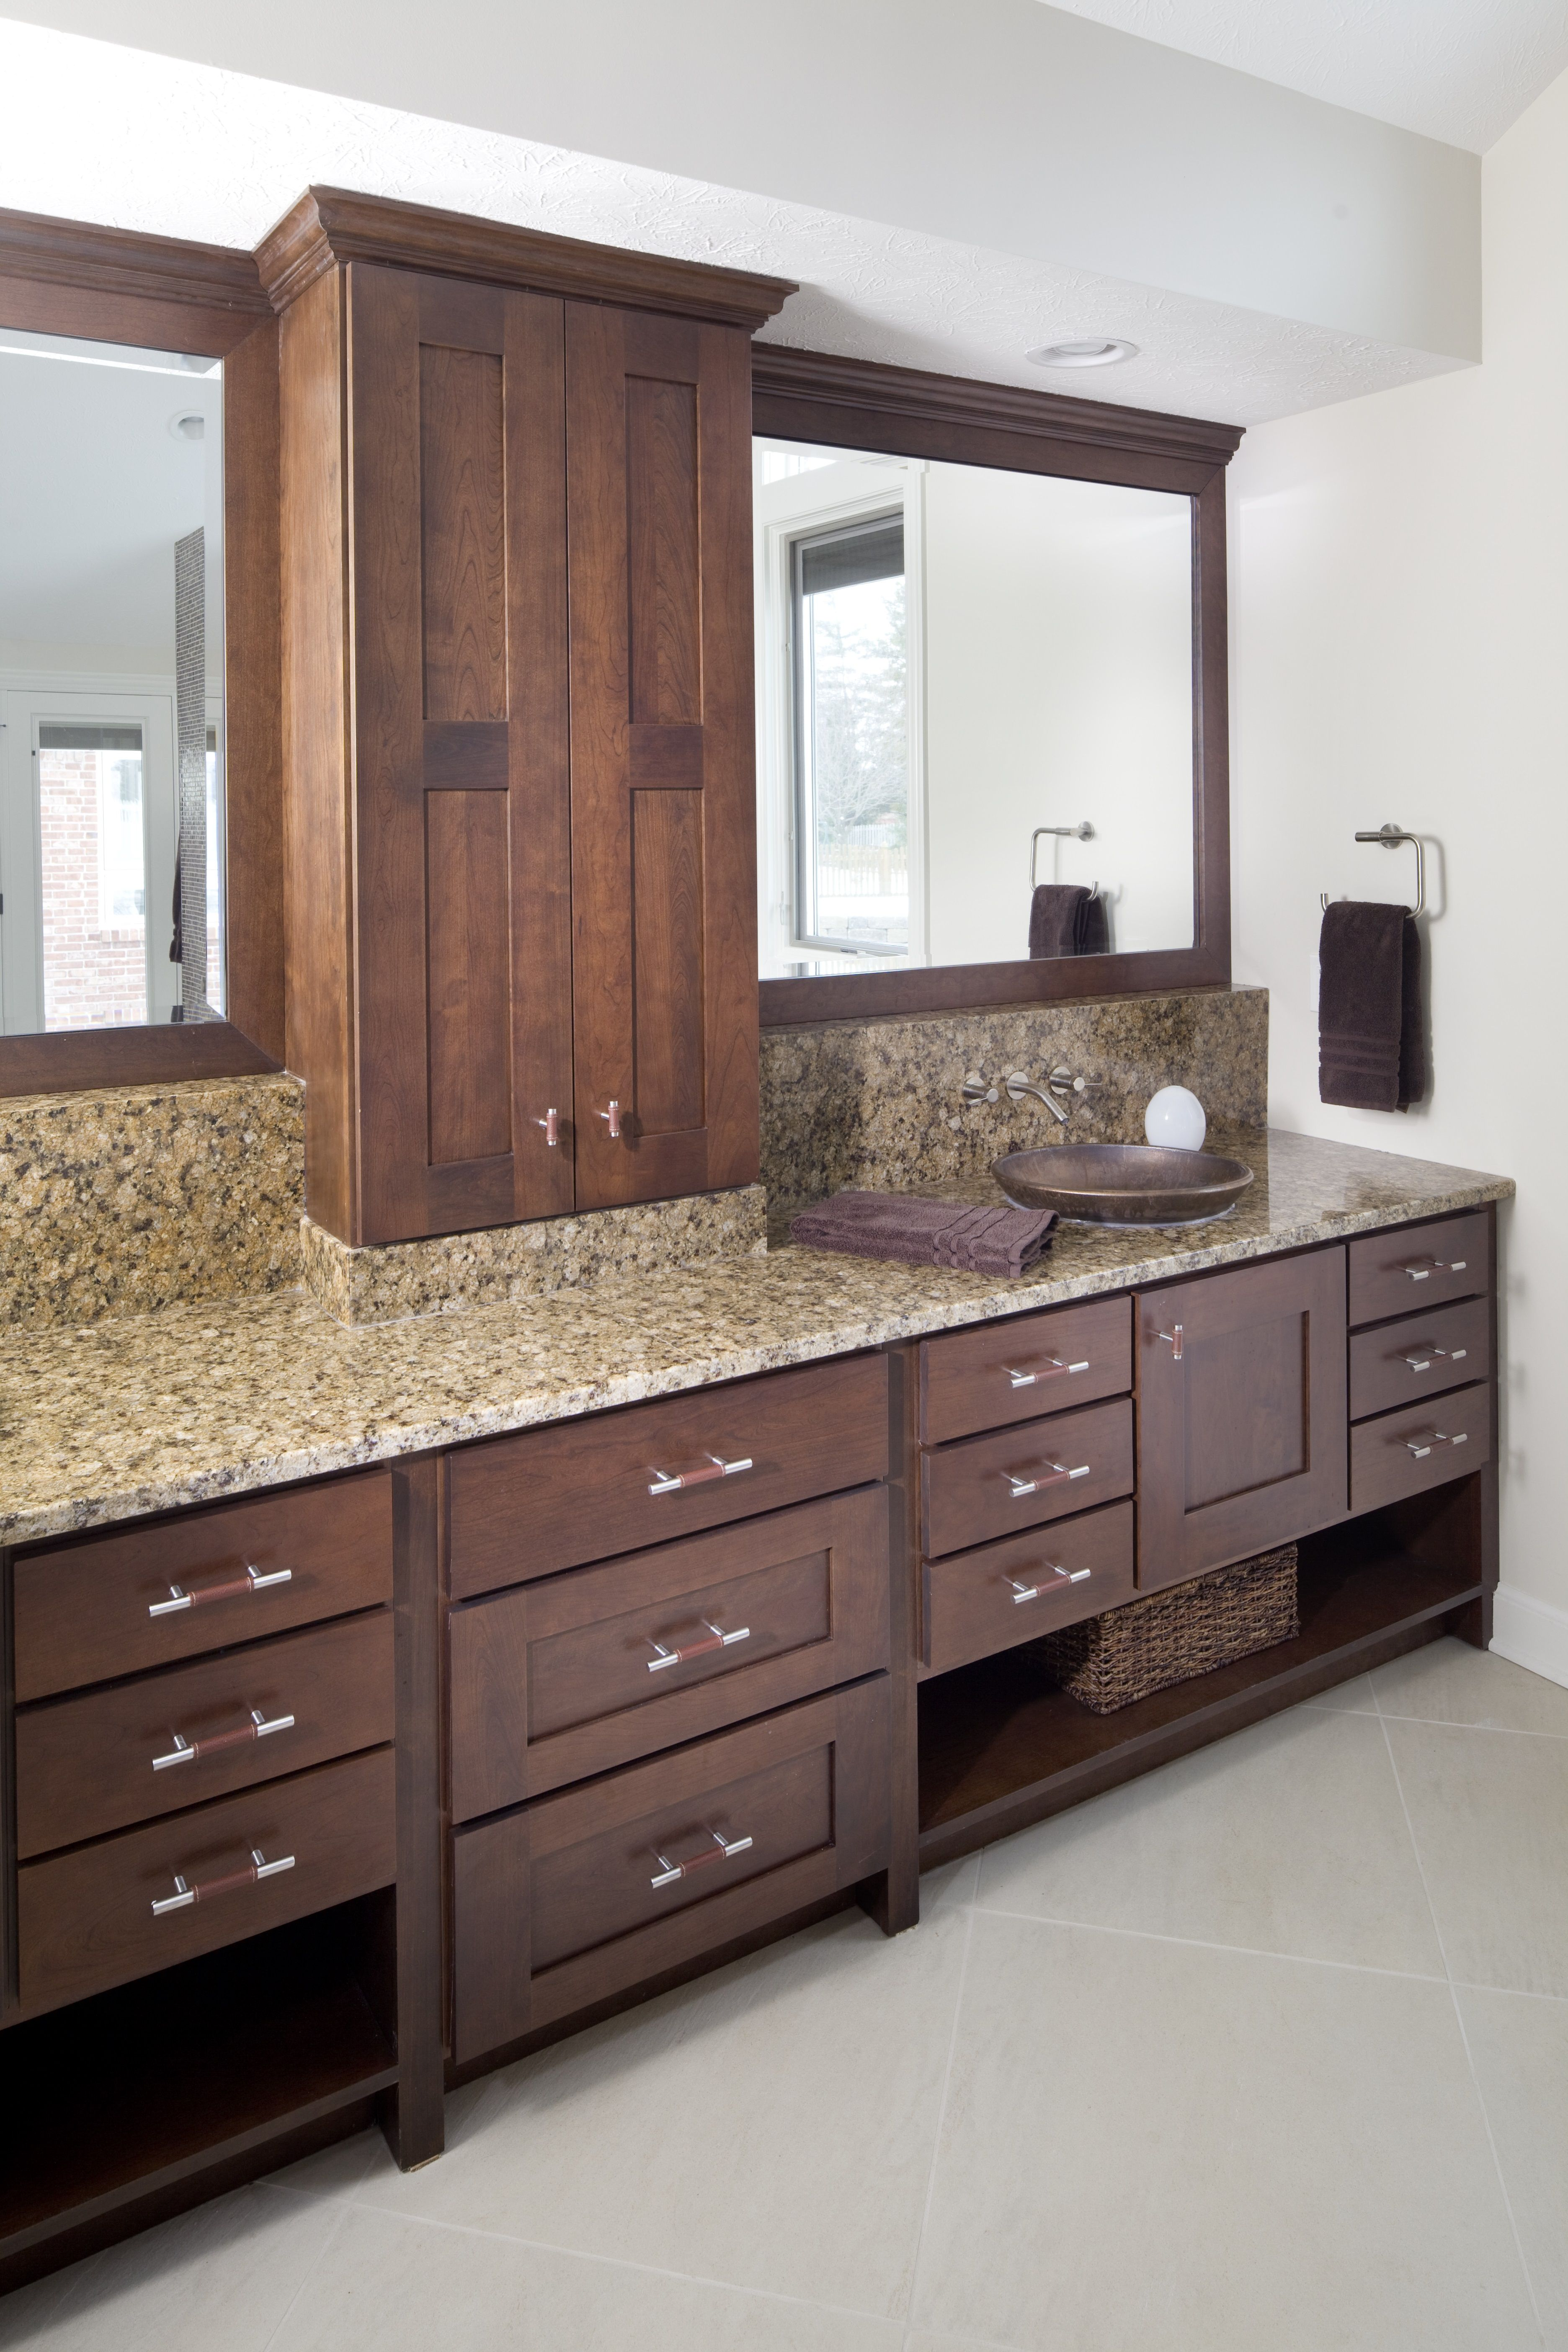 Master bathroom Kitchens by Design, Indianapolis. www